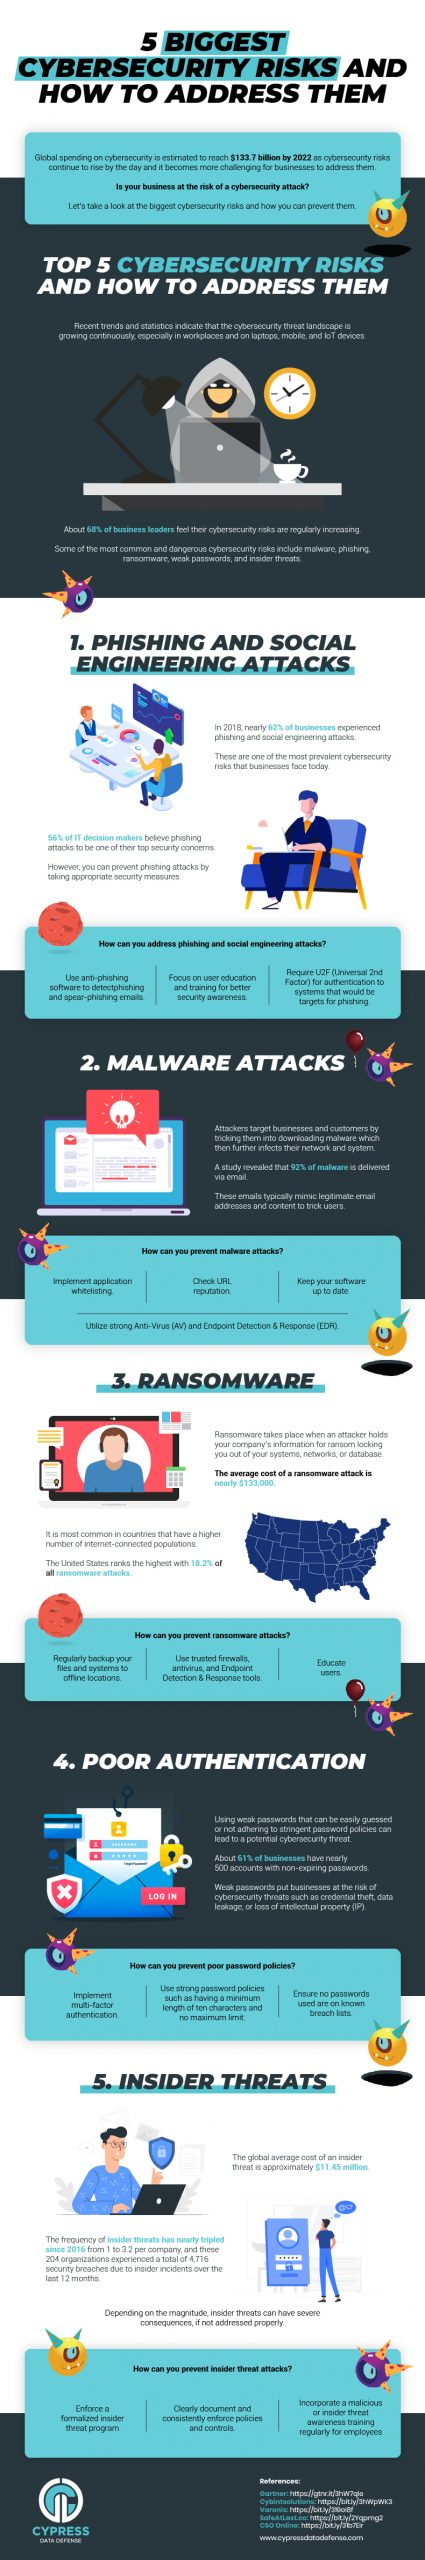 5 Ways to Protect Your Organization from Cyber-Attacks 2